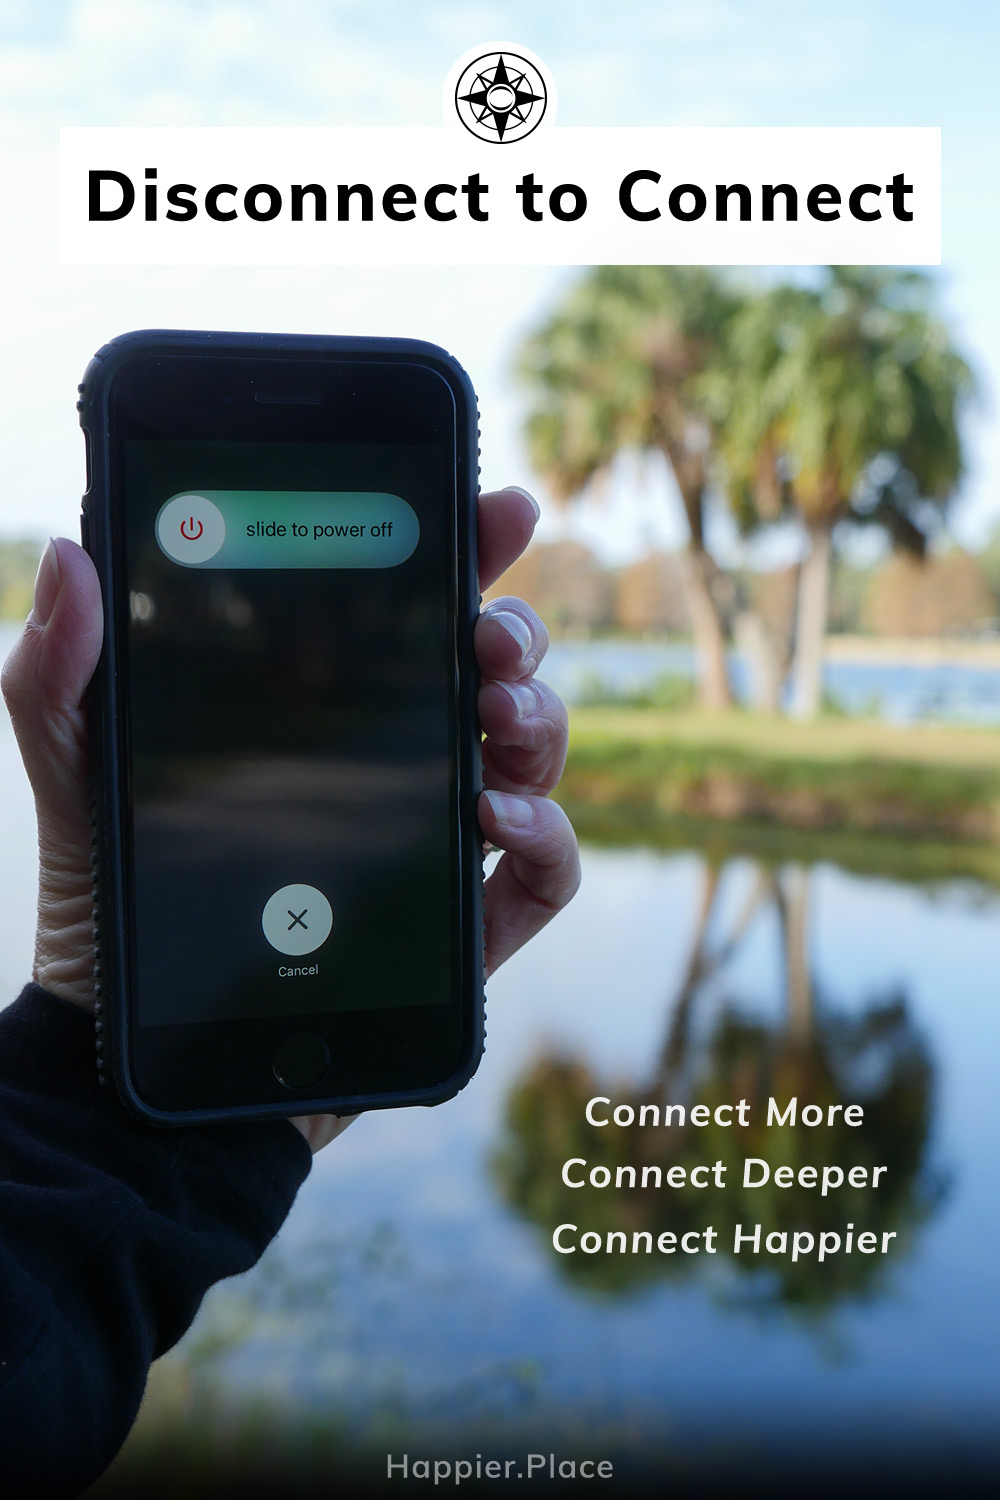 Turn off your smartphone in nature: disconnect to connect more, deeper, happier.